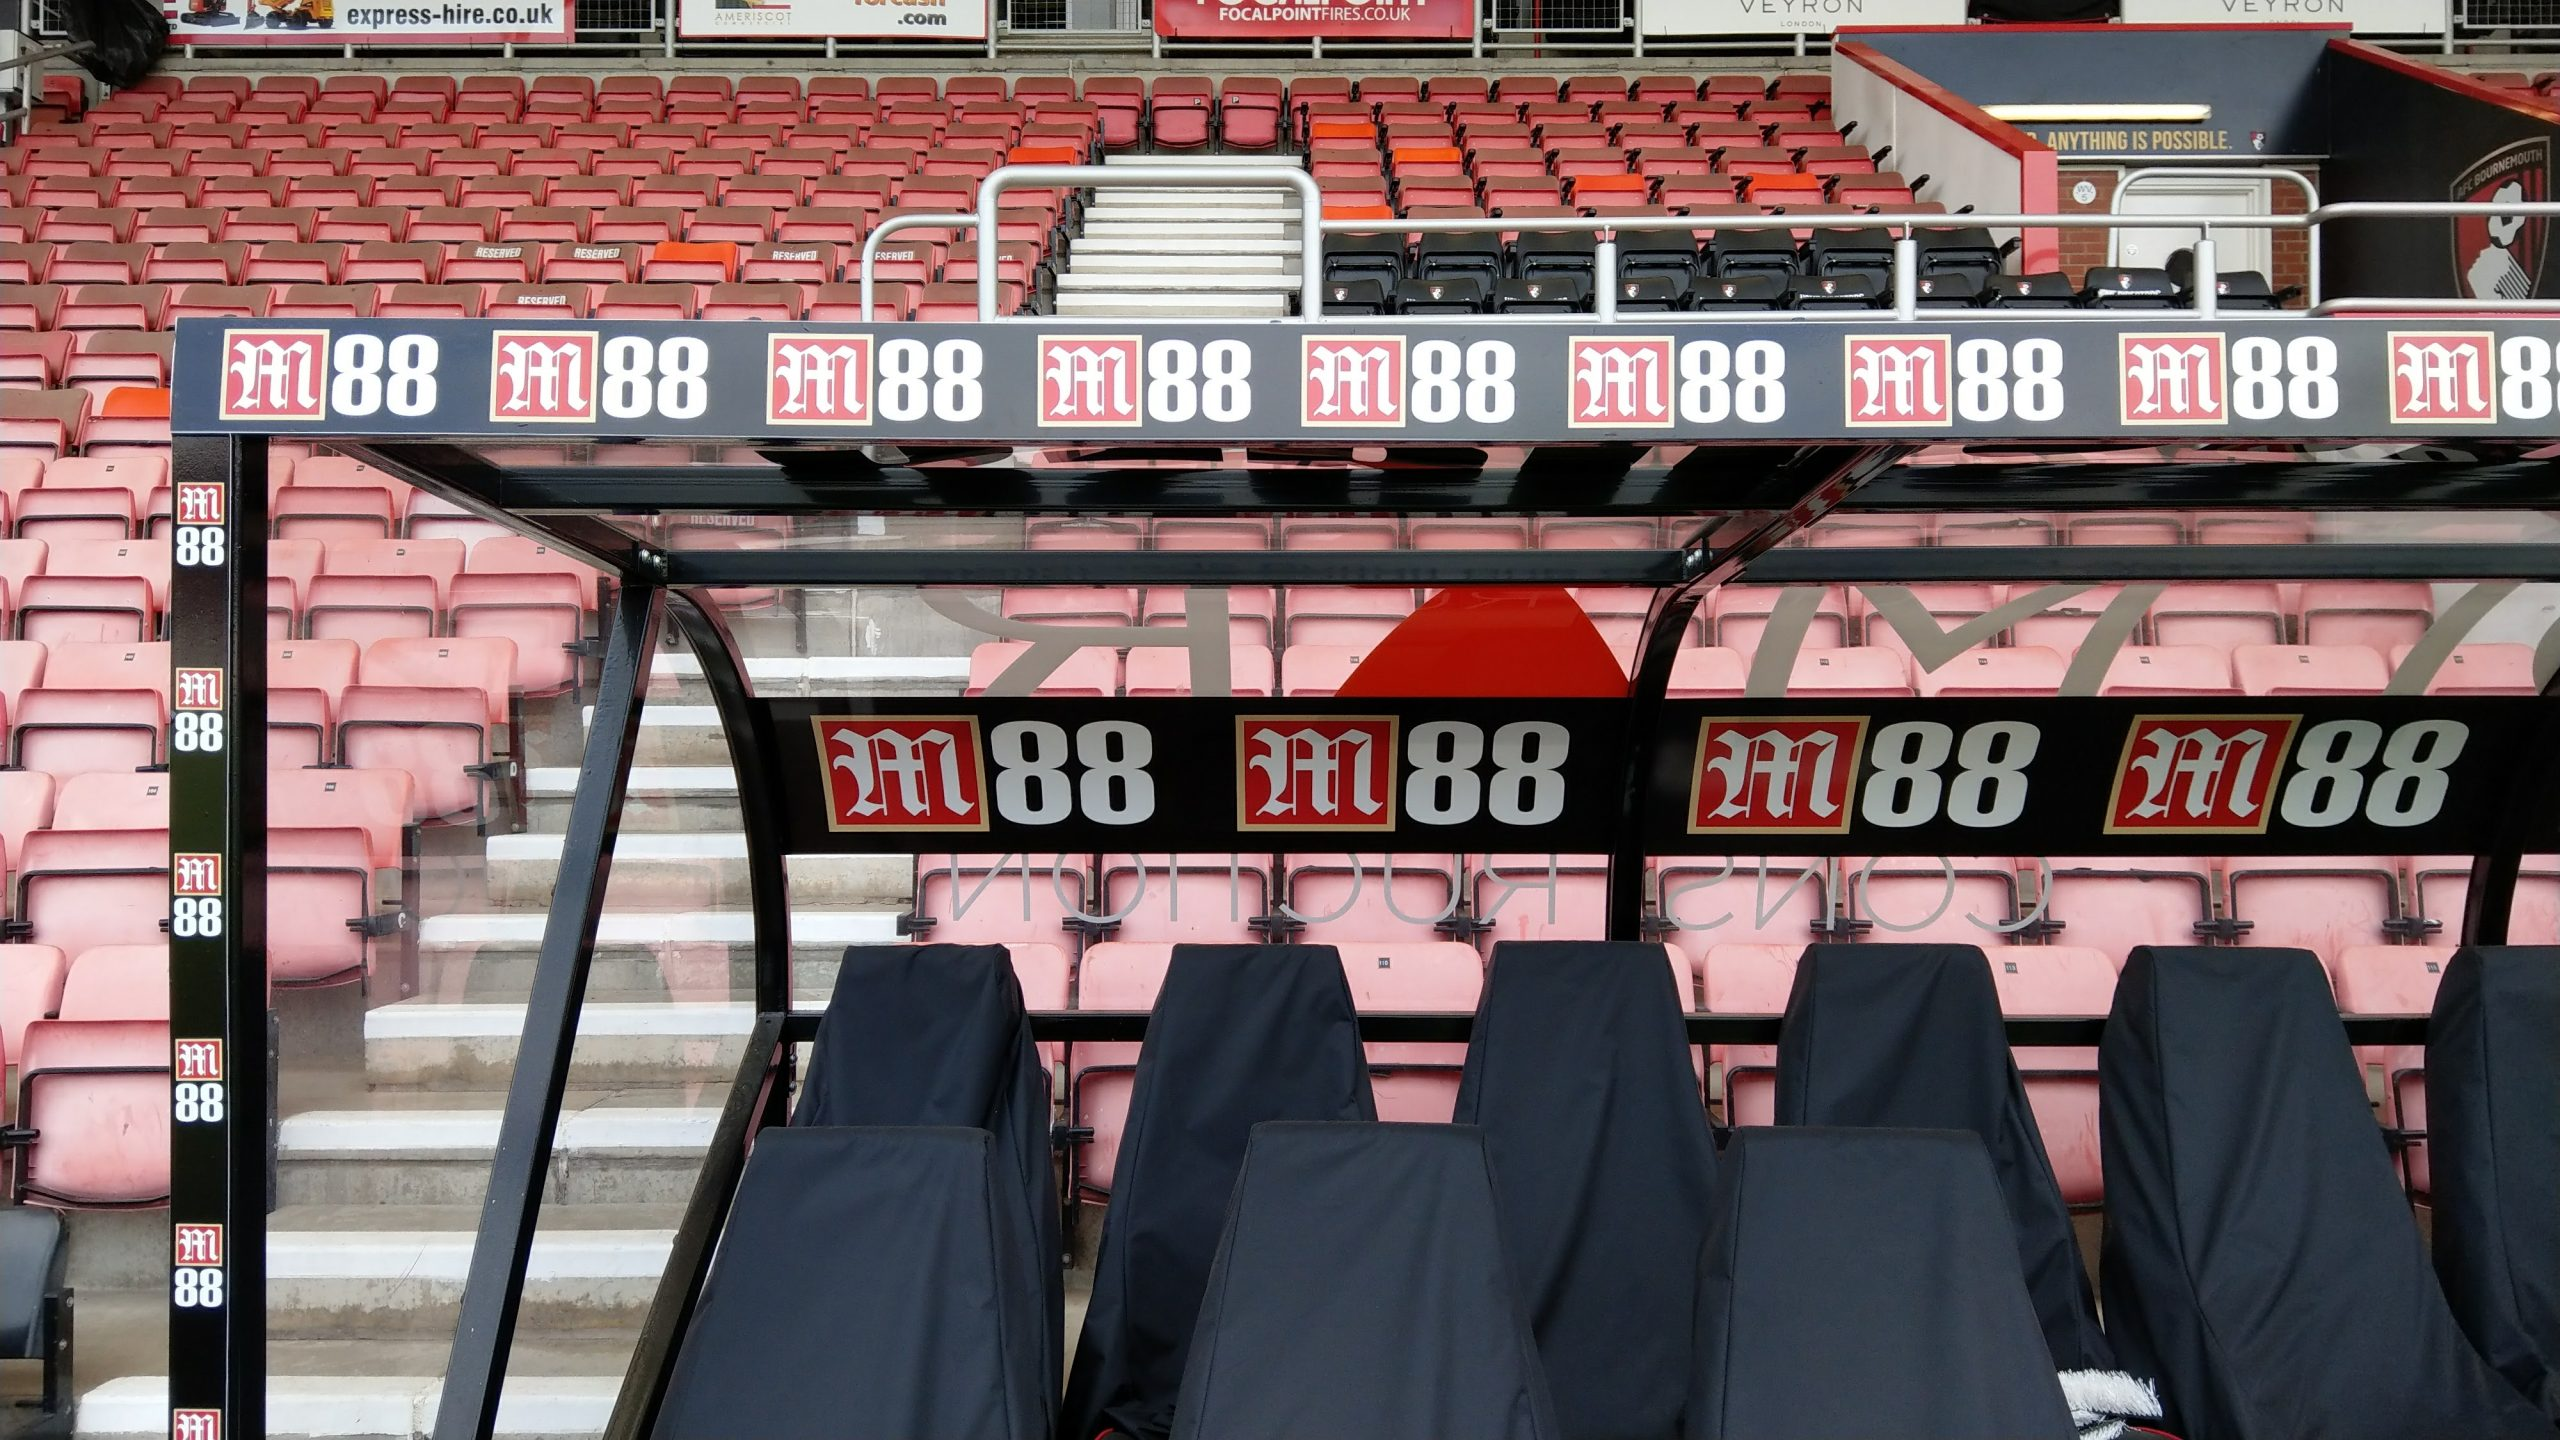 AFC Bournemouth Dugout signage